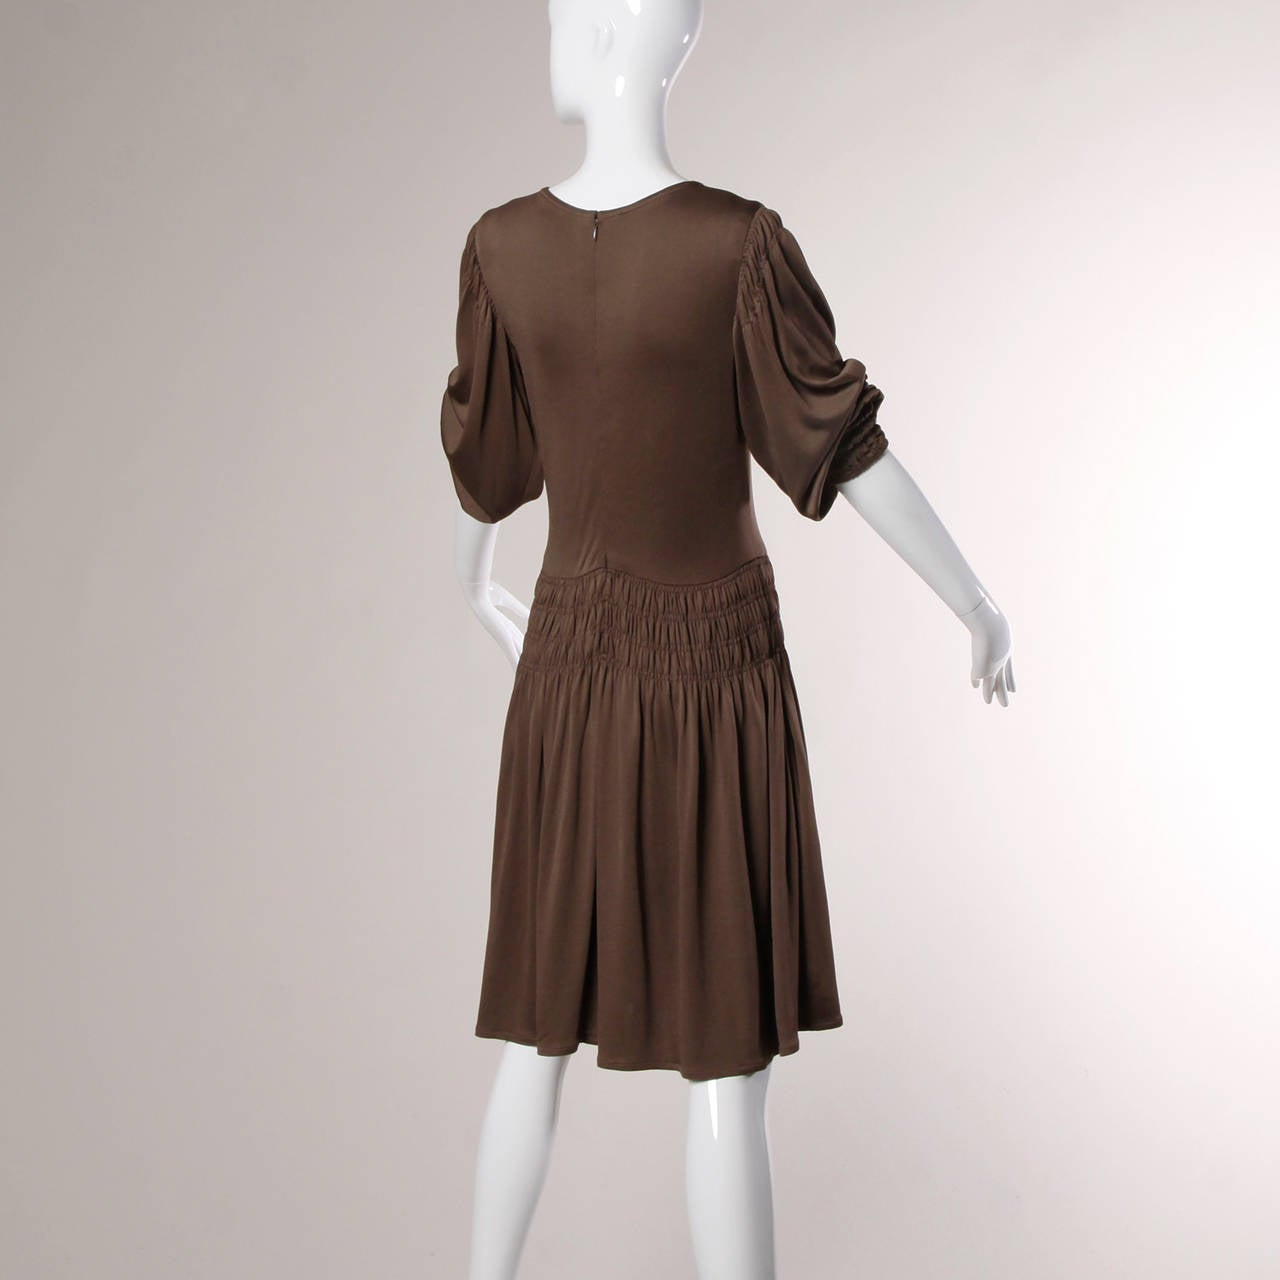 Bill Blass for Saks Fifth Avenue Ruched Brown Jersey Knit Dress For Sale 1